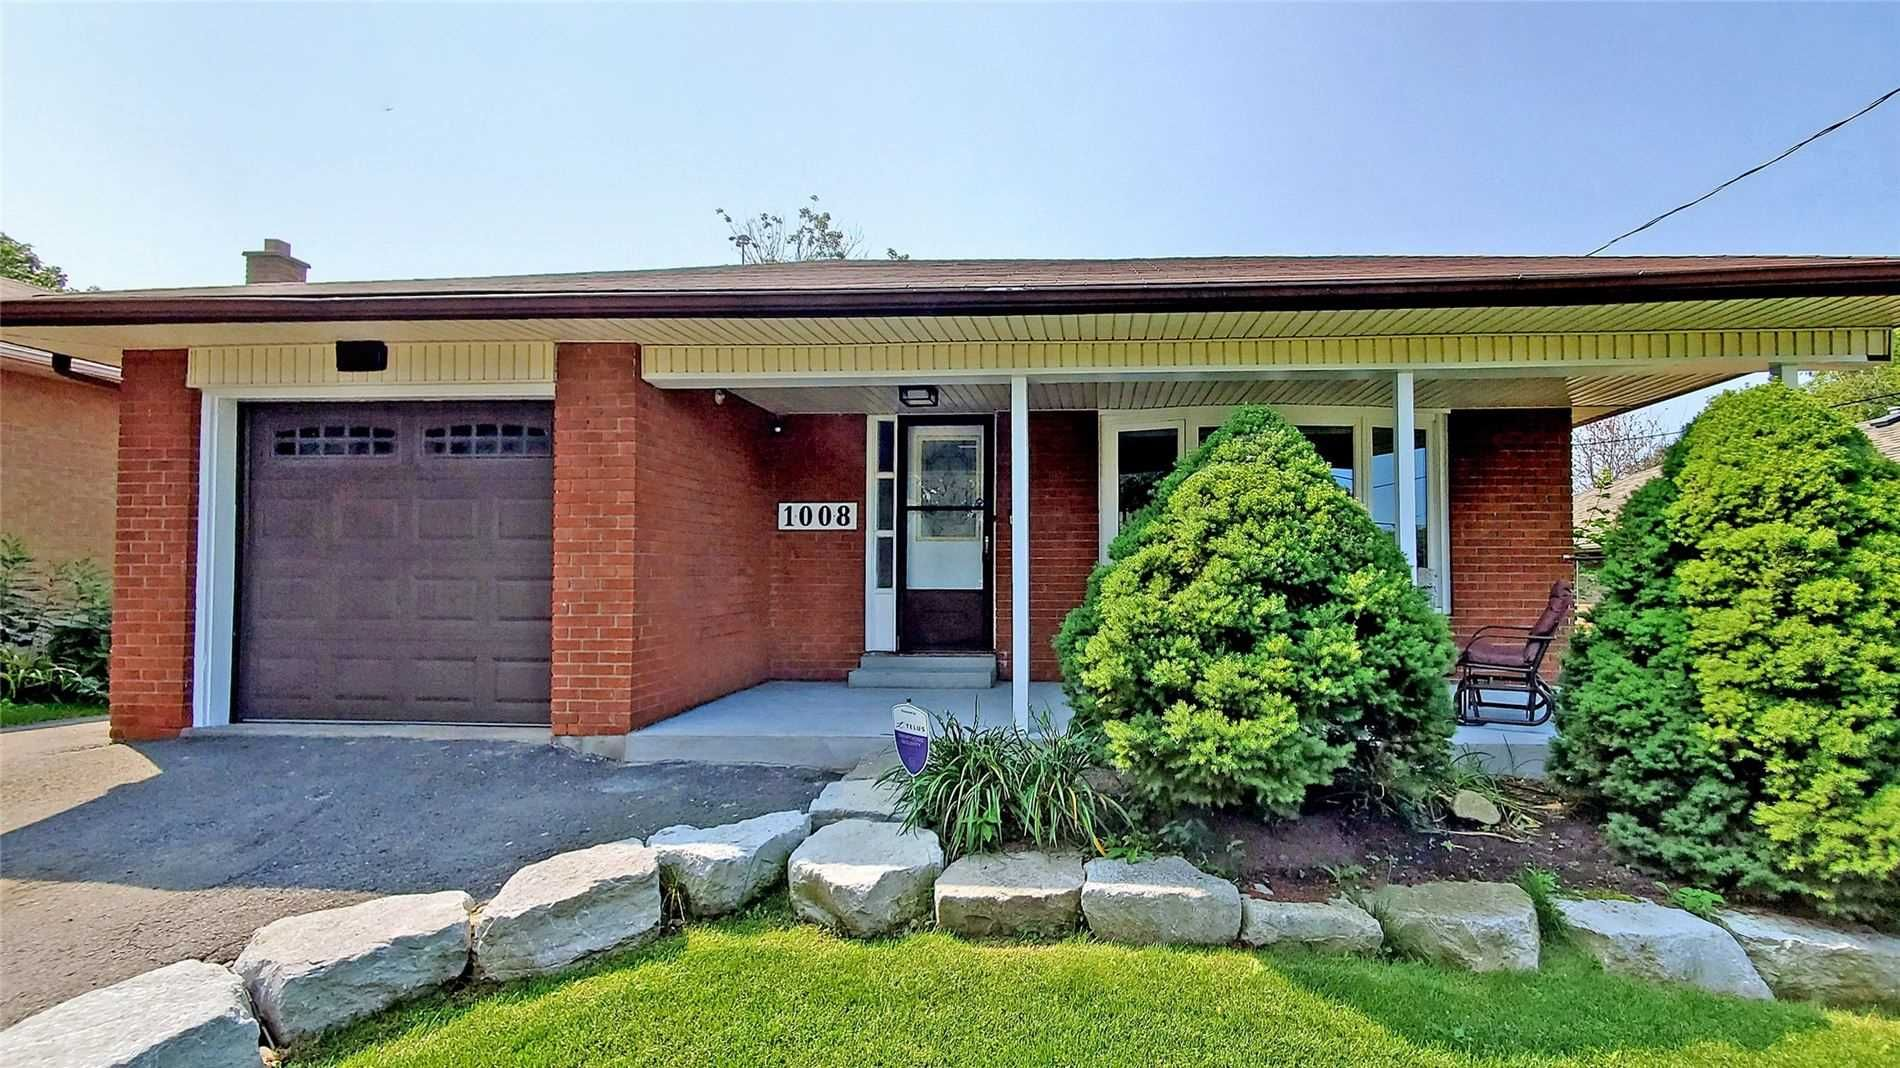 Main Photo: 1008 Mccullough Drive in Whitby: Downtown Whitby House (Bungalow) for sale : MLS®# E5334842